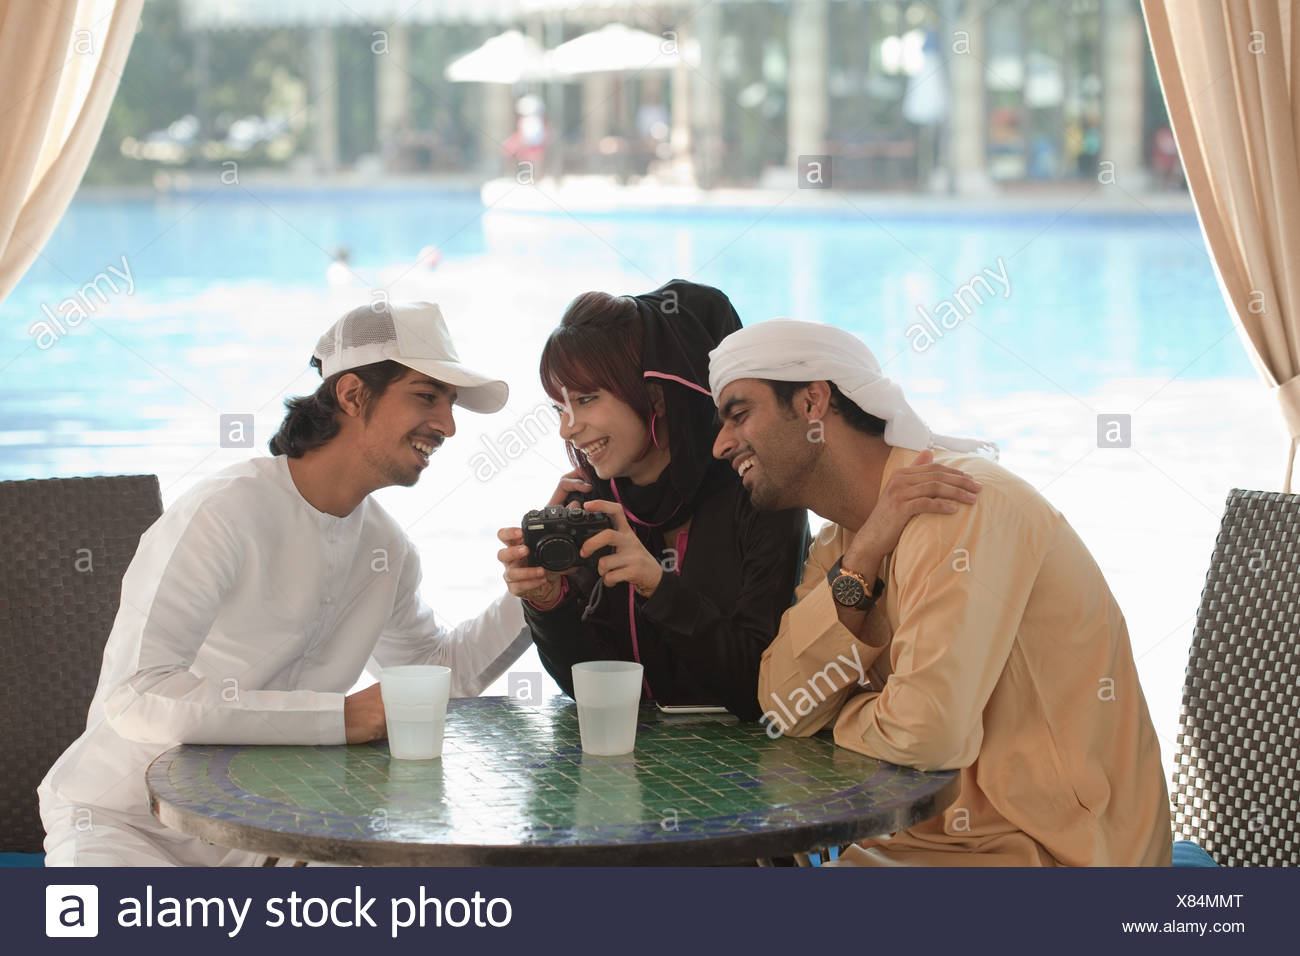 Middle Eastern people looking at camera - Stock Image